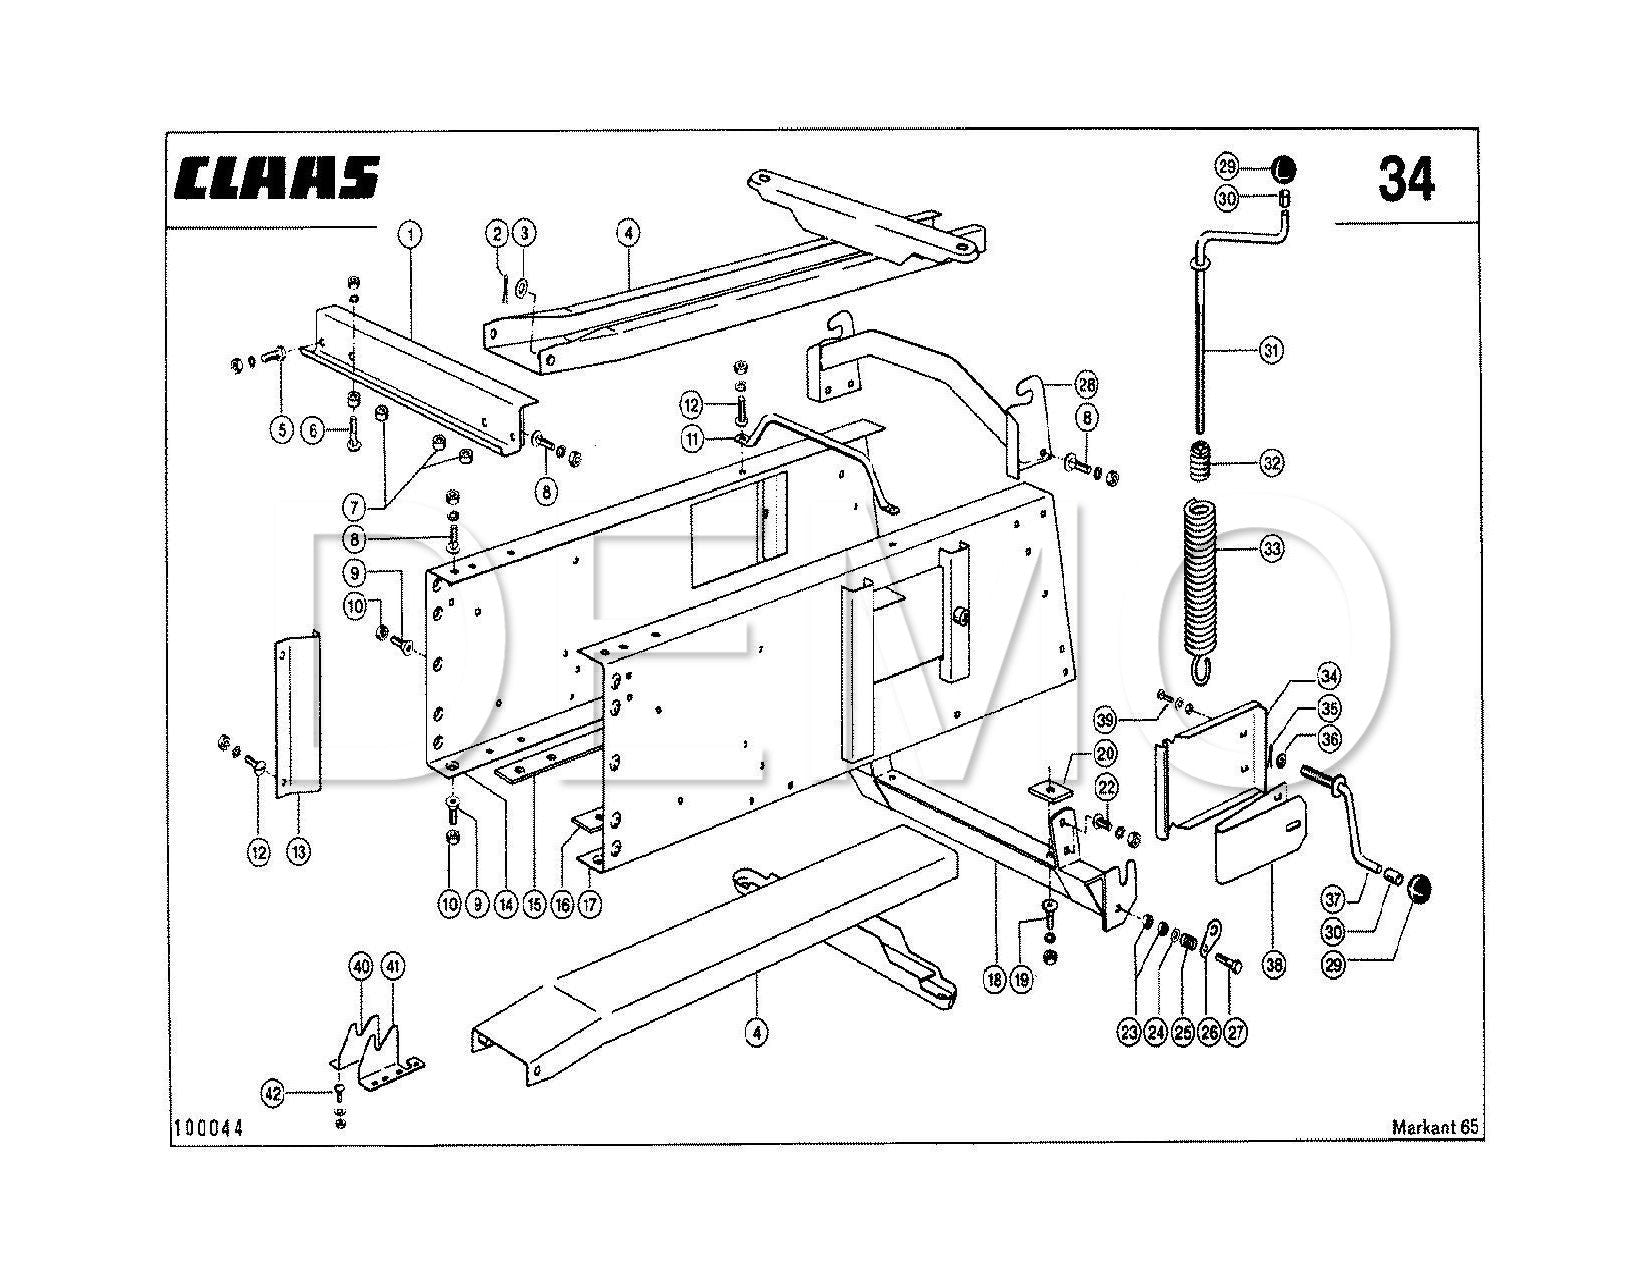 Claas Markant 55 Parts Catalogue, Spares List, Manual PDF